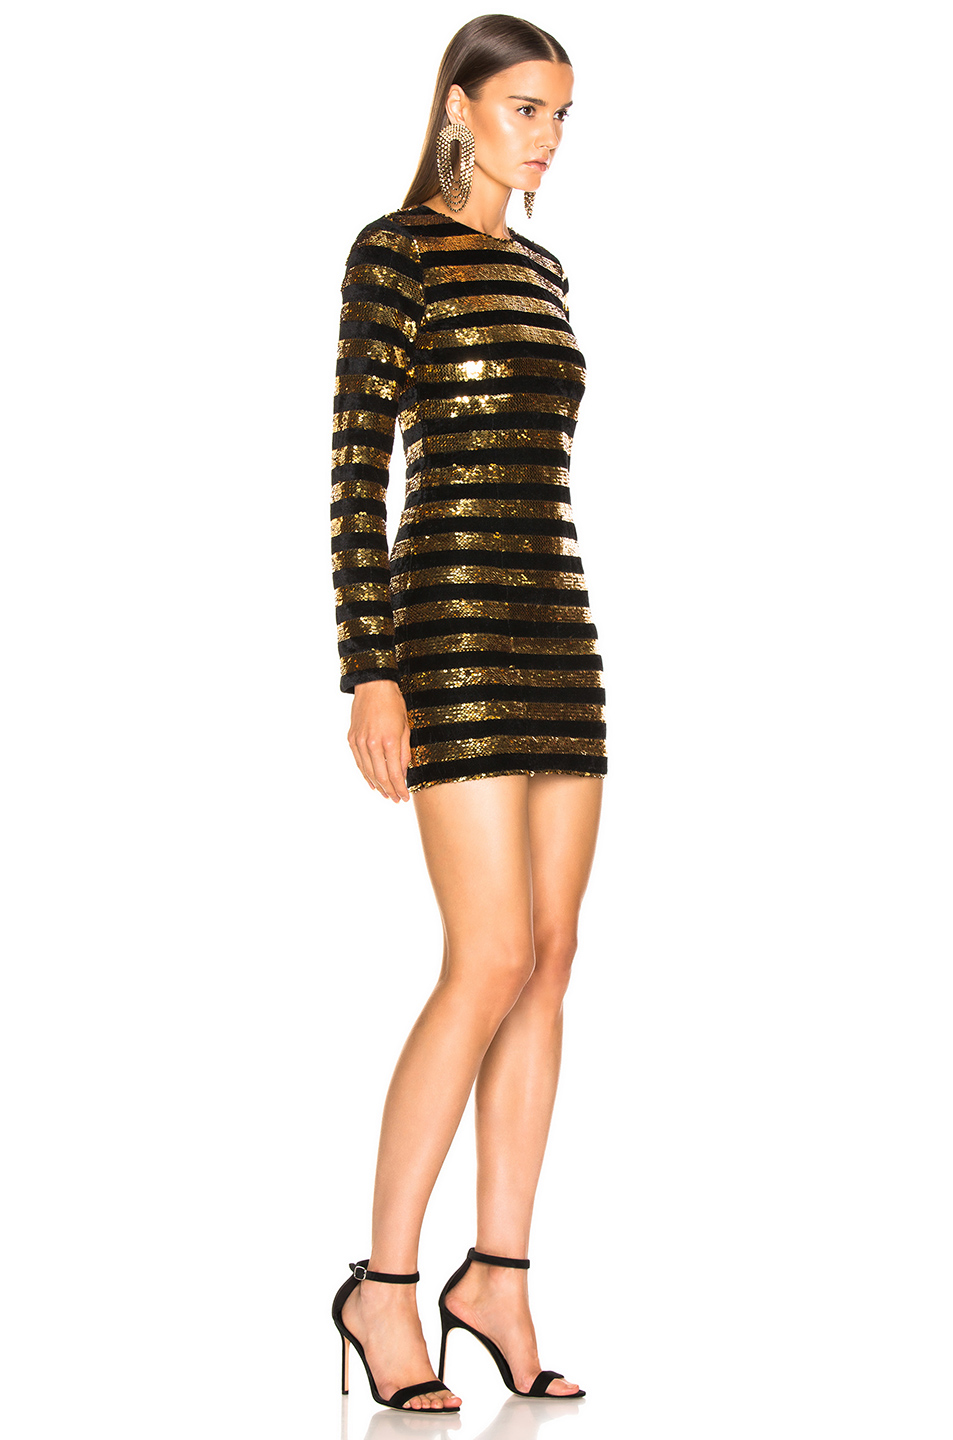 f5e5eaf5 Buy Original RtA Crystal Sequin Dress at Indonesia | BOBOBOBO